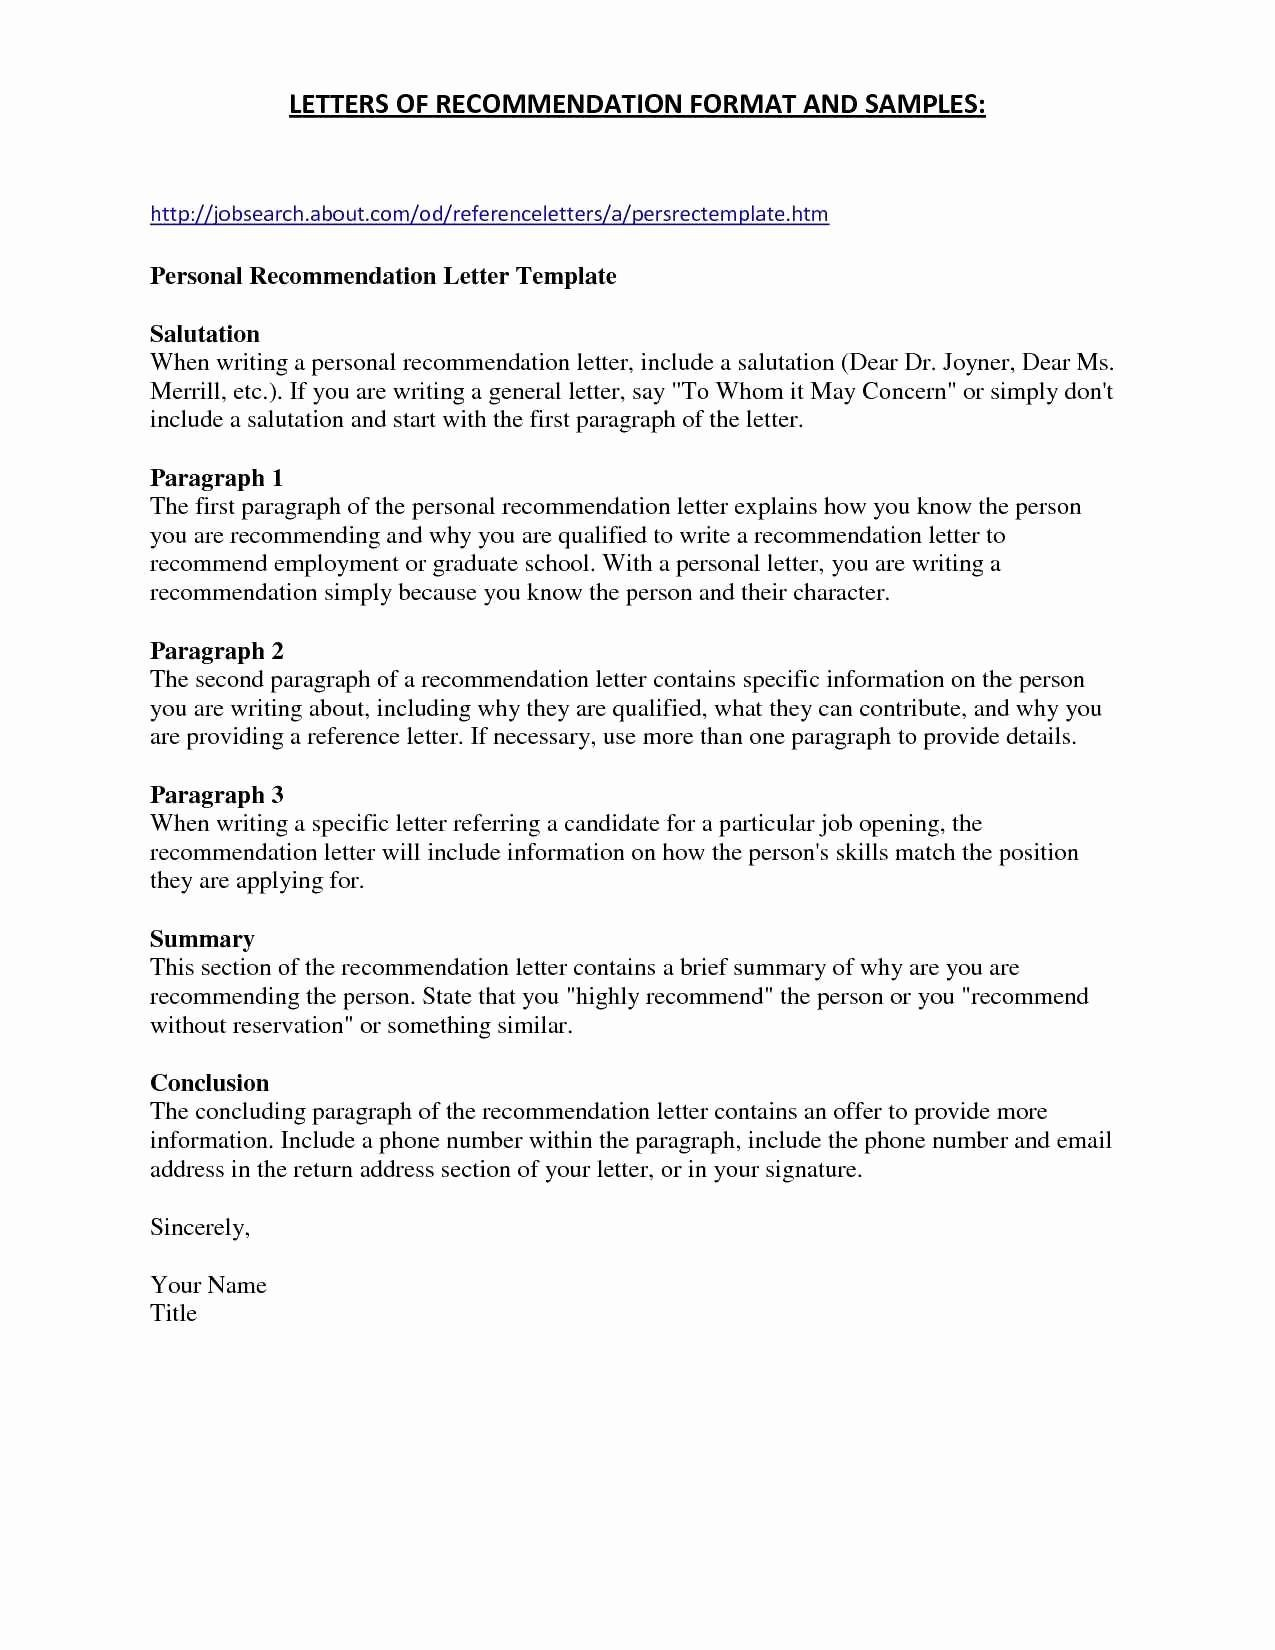 School Recommendation Letter Template Samples Letter Template